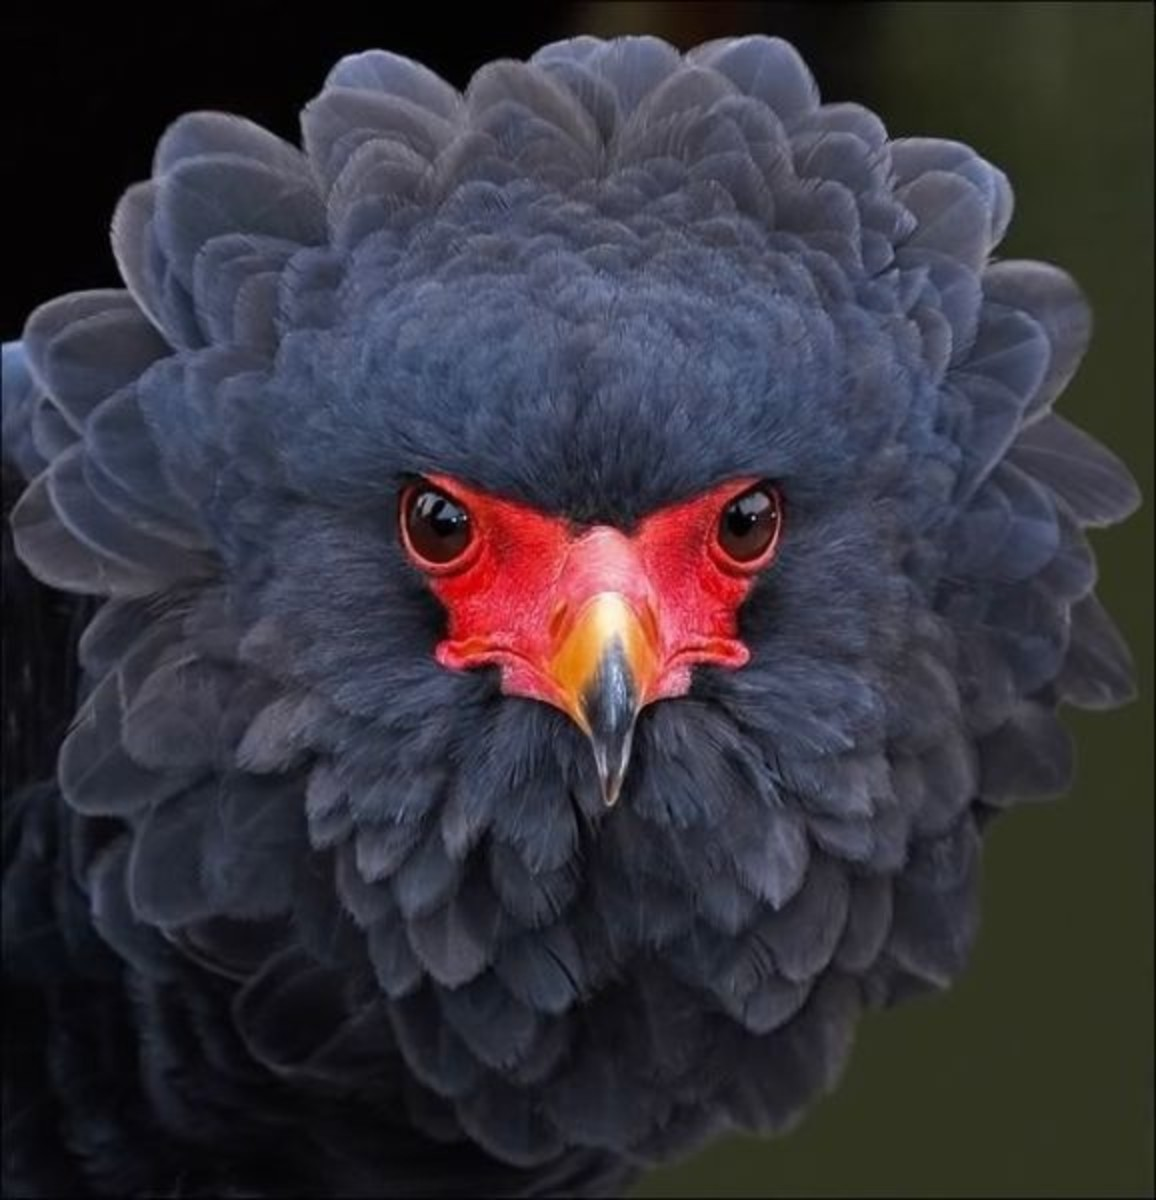 How about a bird that looks like a flower?